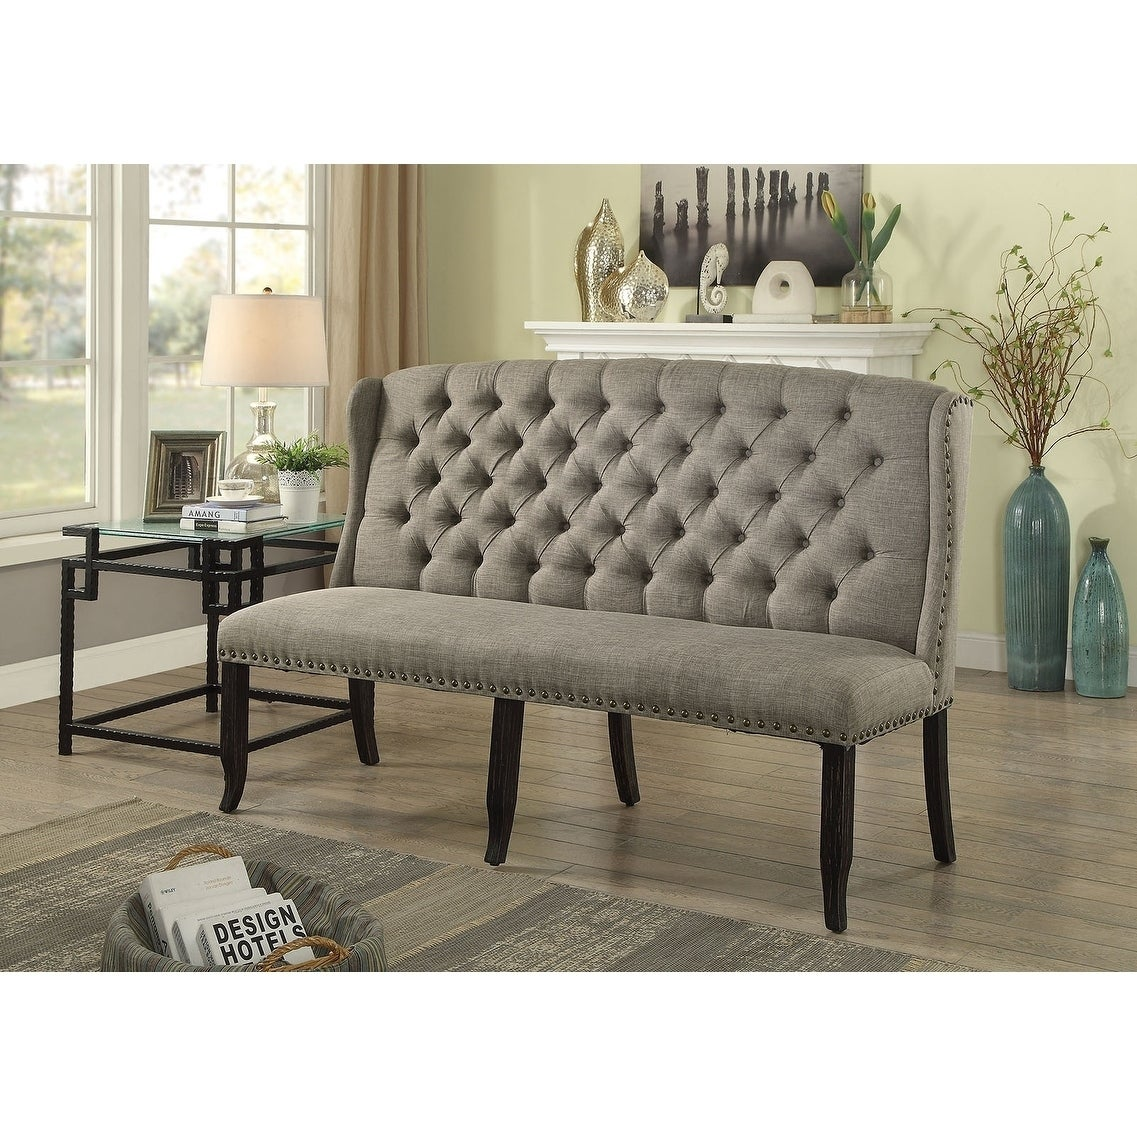 Tufted High Back 3 Seater Love Seat Bench With Nailhead Trims Light Gray On Sale Overstock 23008222